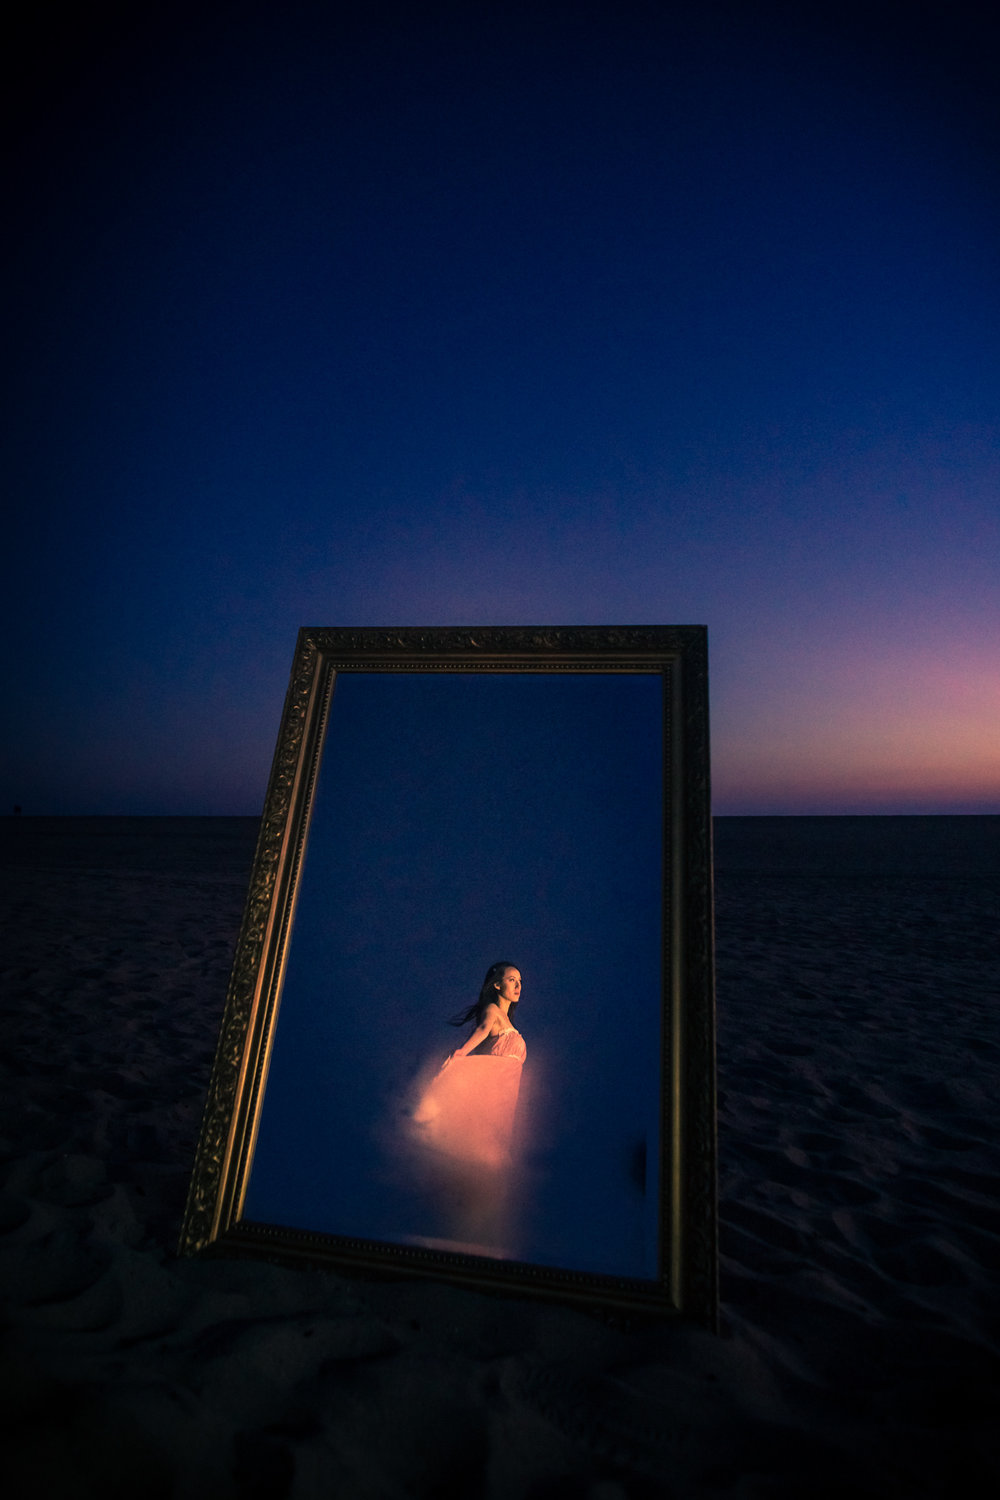 Experimental portrait with a vintage mirror with a lady a in a pink dress taken on the beach on Balboa Peninsula